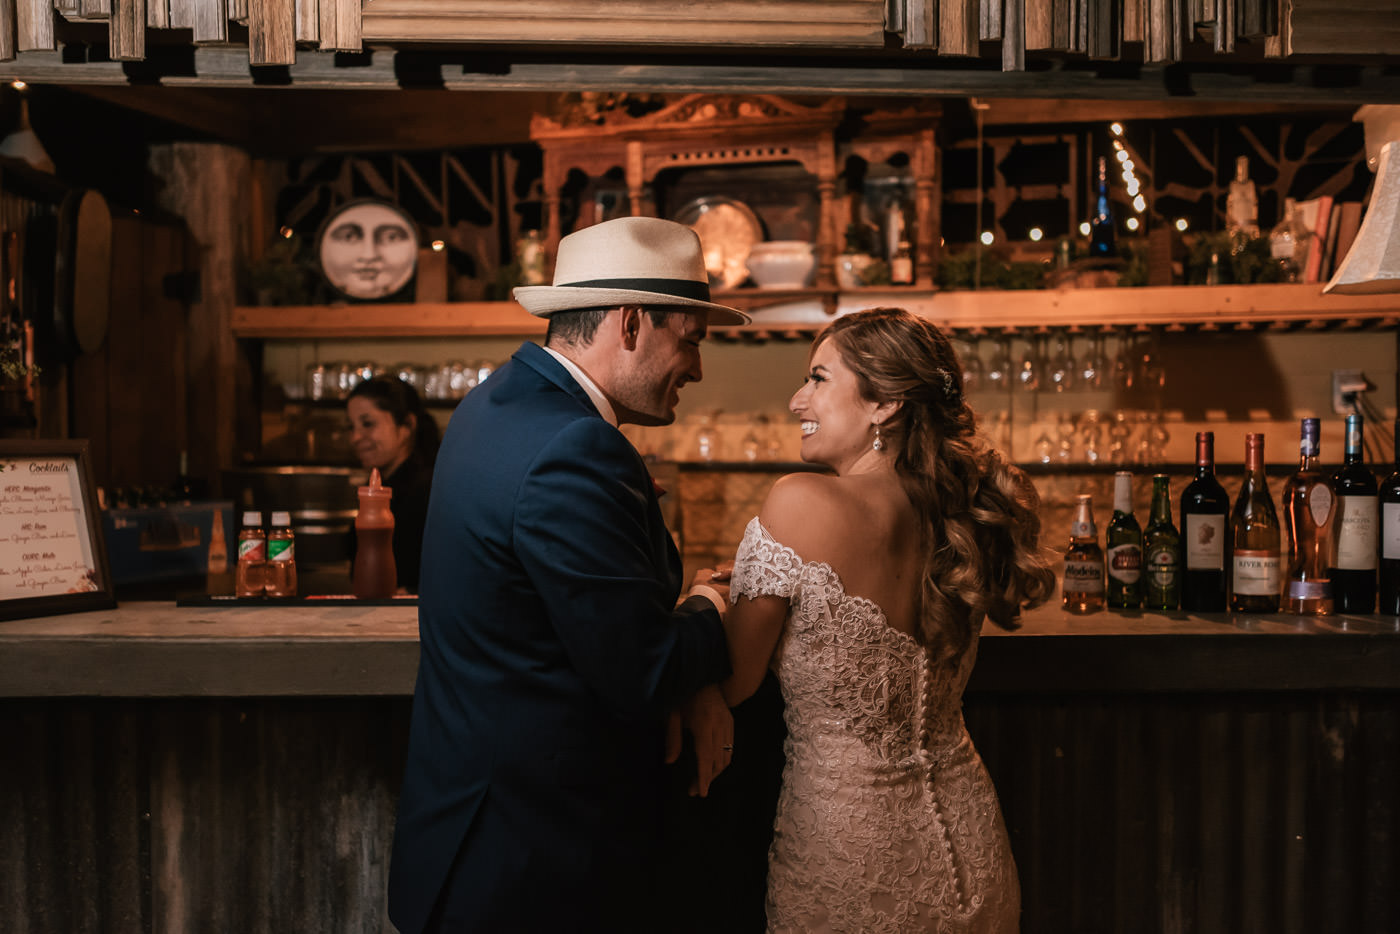 Newlyweds hit the bar and order their favorite drinks.